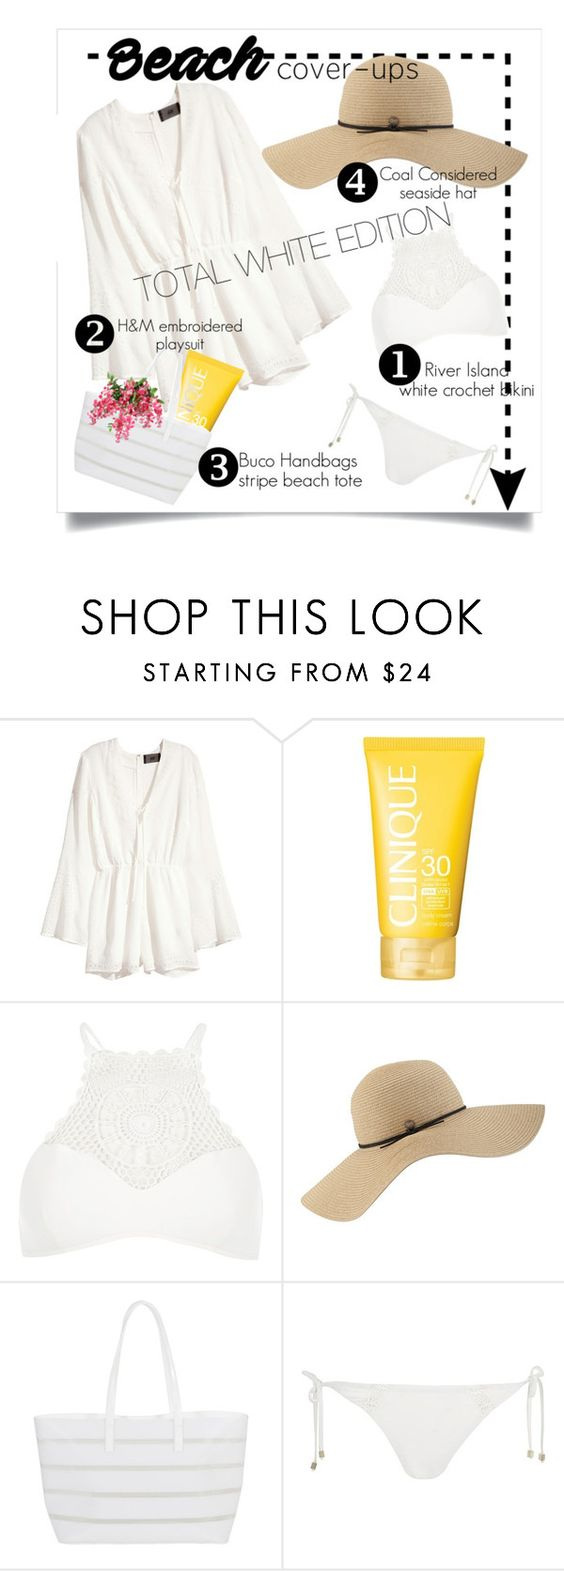 """""""Beach Cover-ups #2"""" by fabulusvogue ❤ liked on Polyvore featuring H&M, Clinique, River Island, Coal and BUCO"""